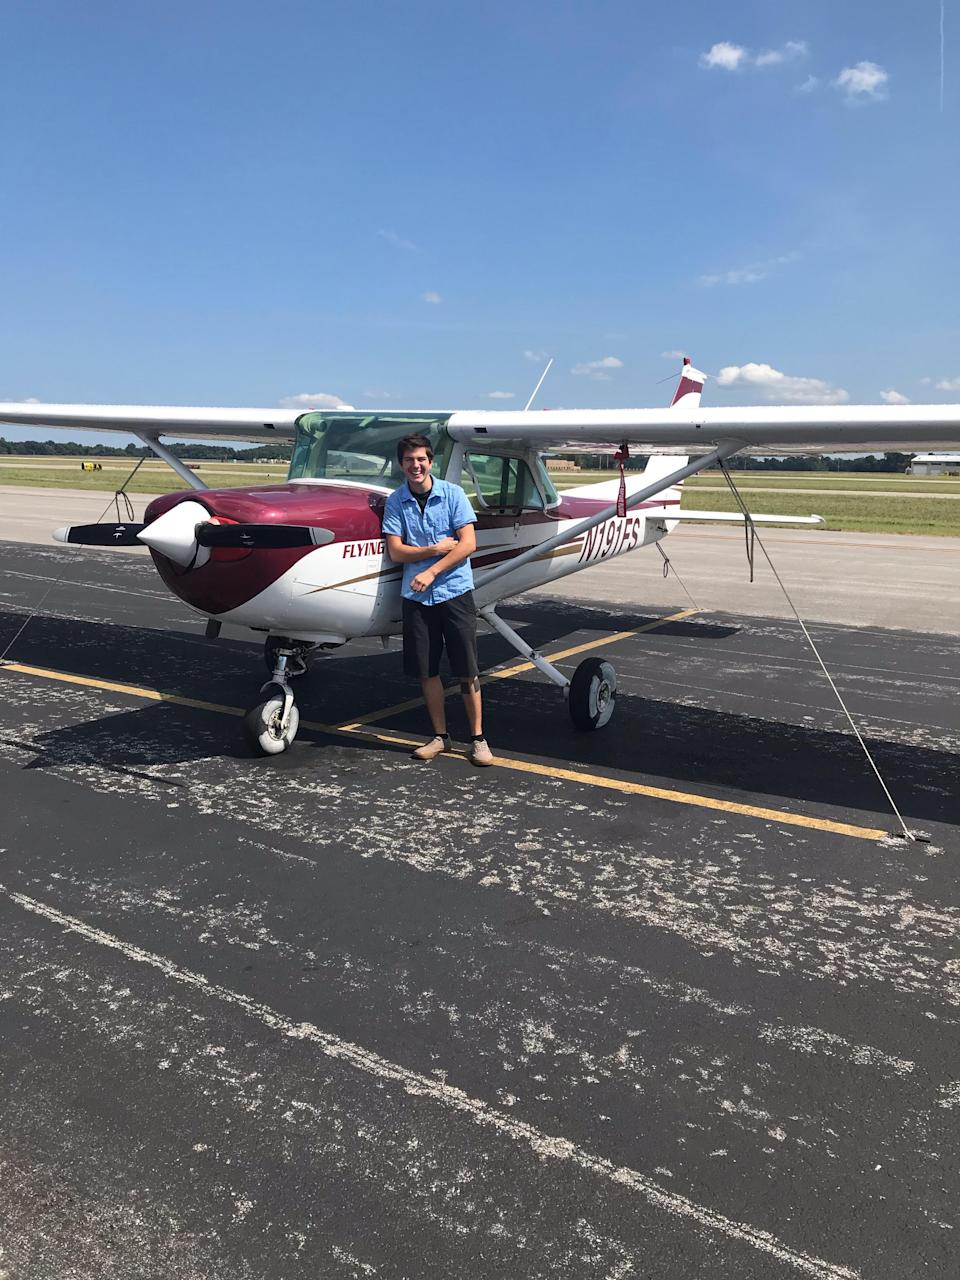 Hayden Pegues, who is a senior at Southern Illinois University majoring in aviation management,  says at the beginning of the pandemic, his food insecurity was exacerbated after he left his construction job and was no longer eligible for SNAP food stamps. (Photo Courtesy: Hayden Pegues)